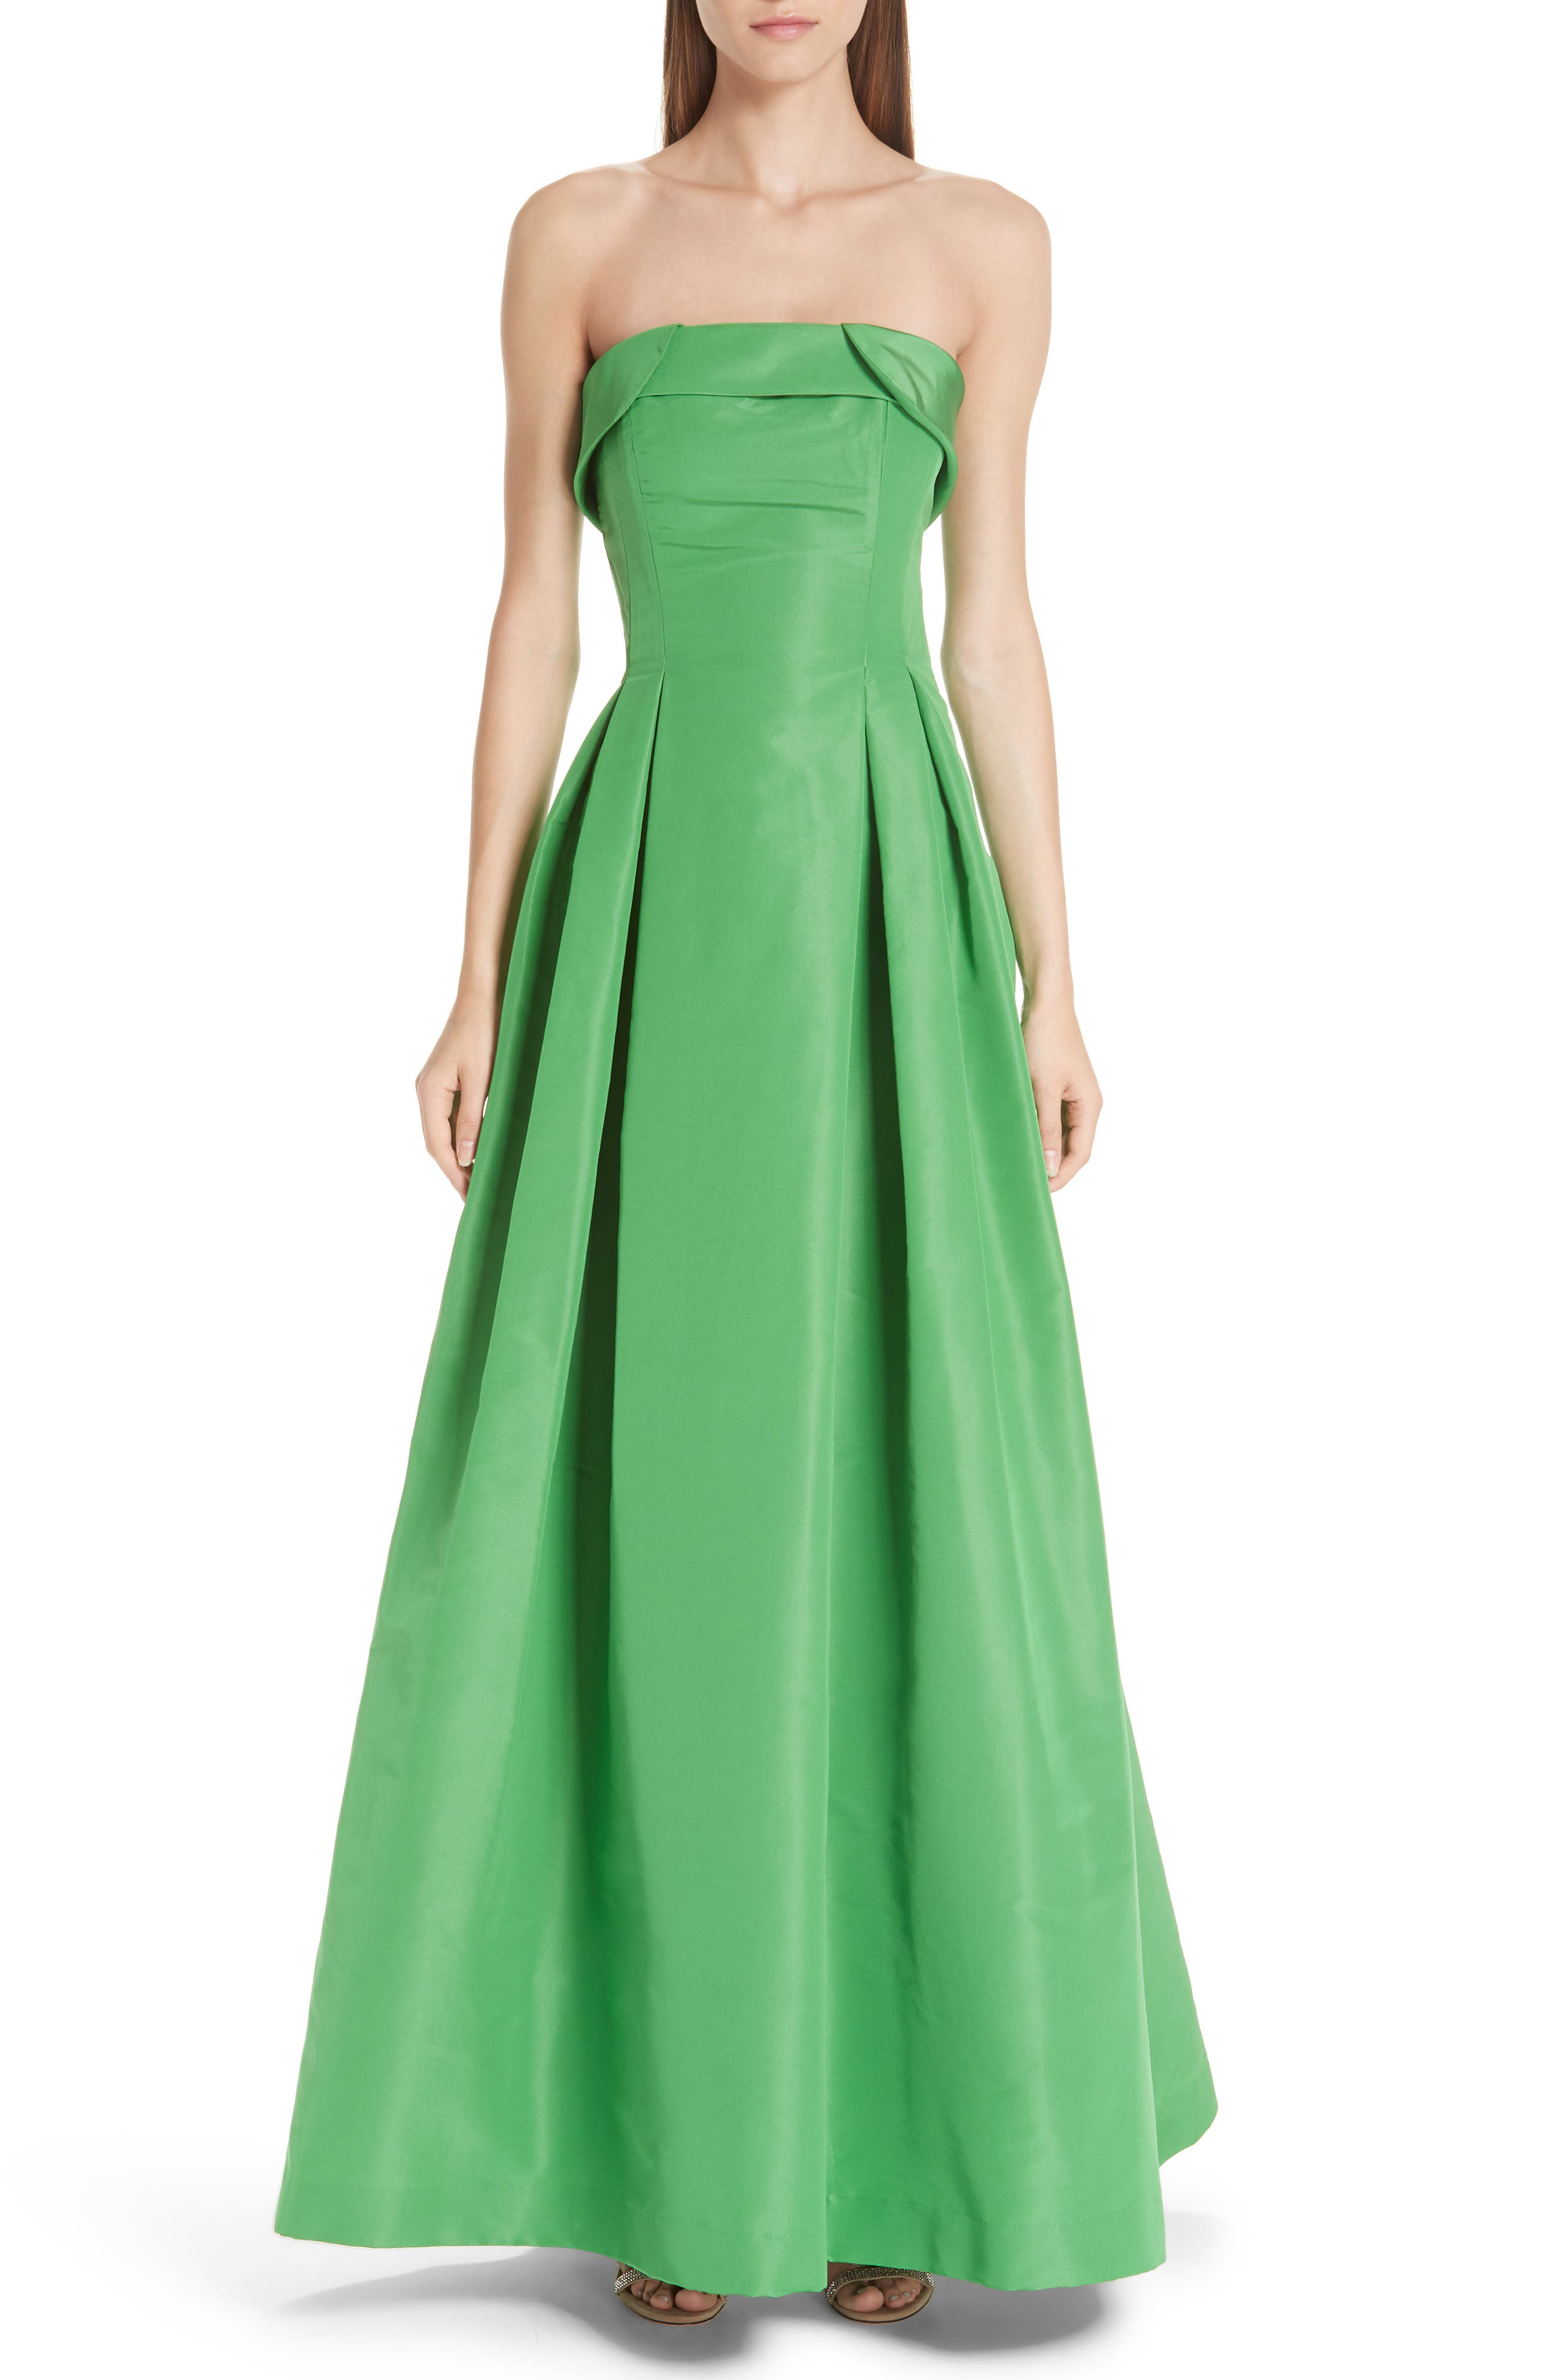 Foldover Strapless Ballgown,                             Main thumbnail 1, color,                             KELLY GREEN